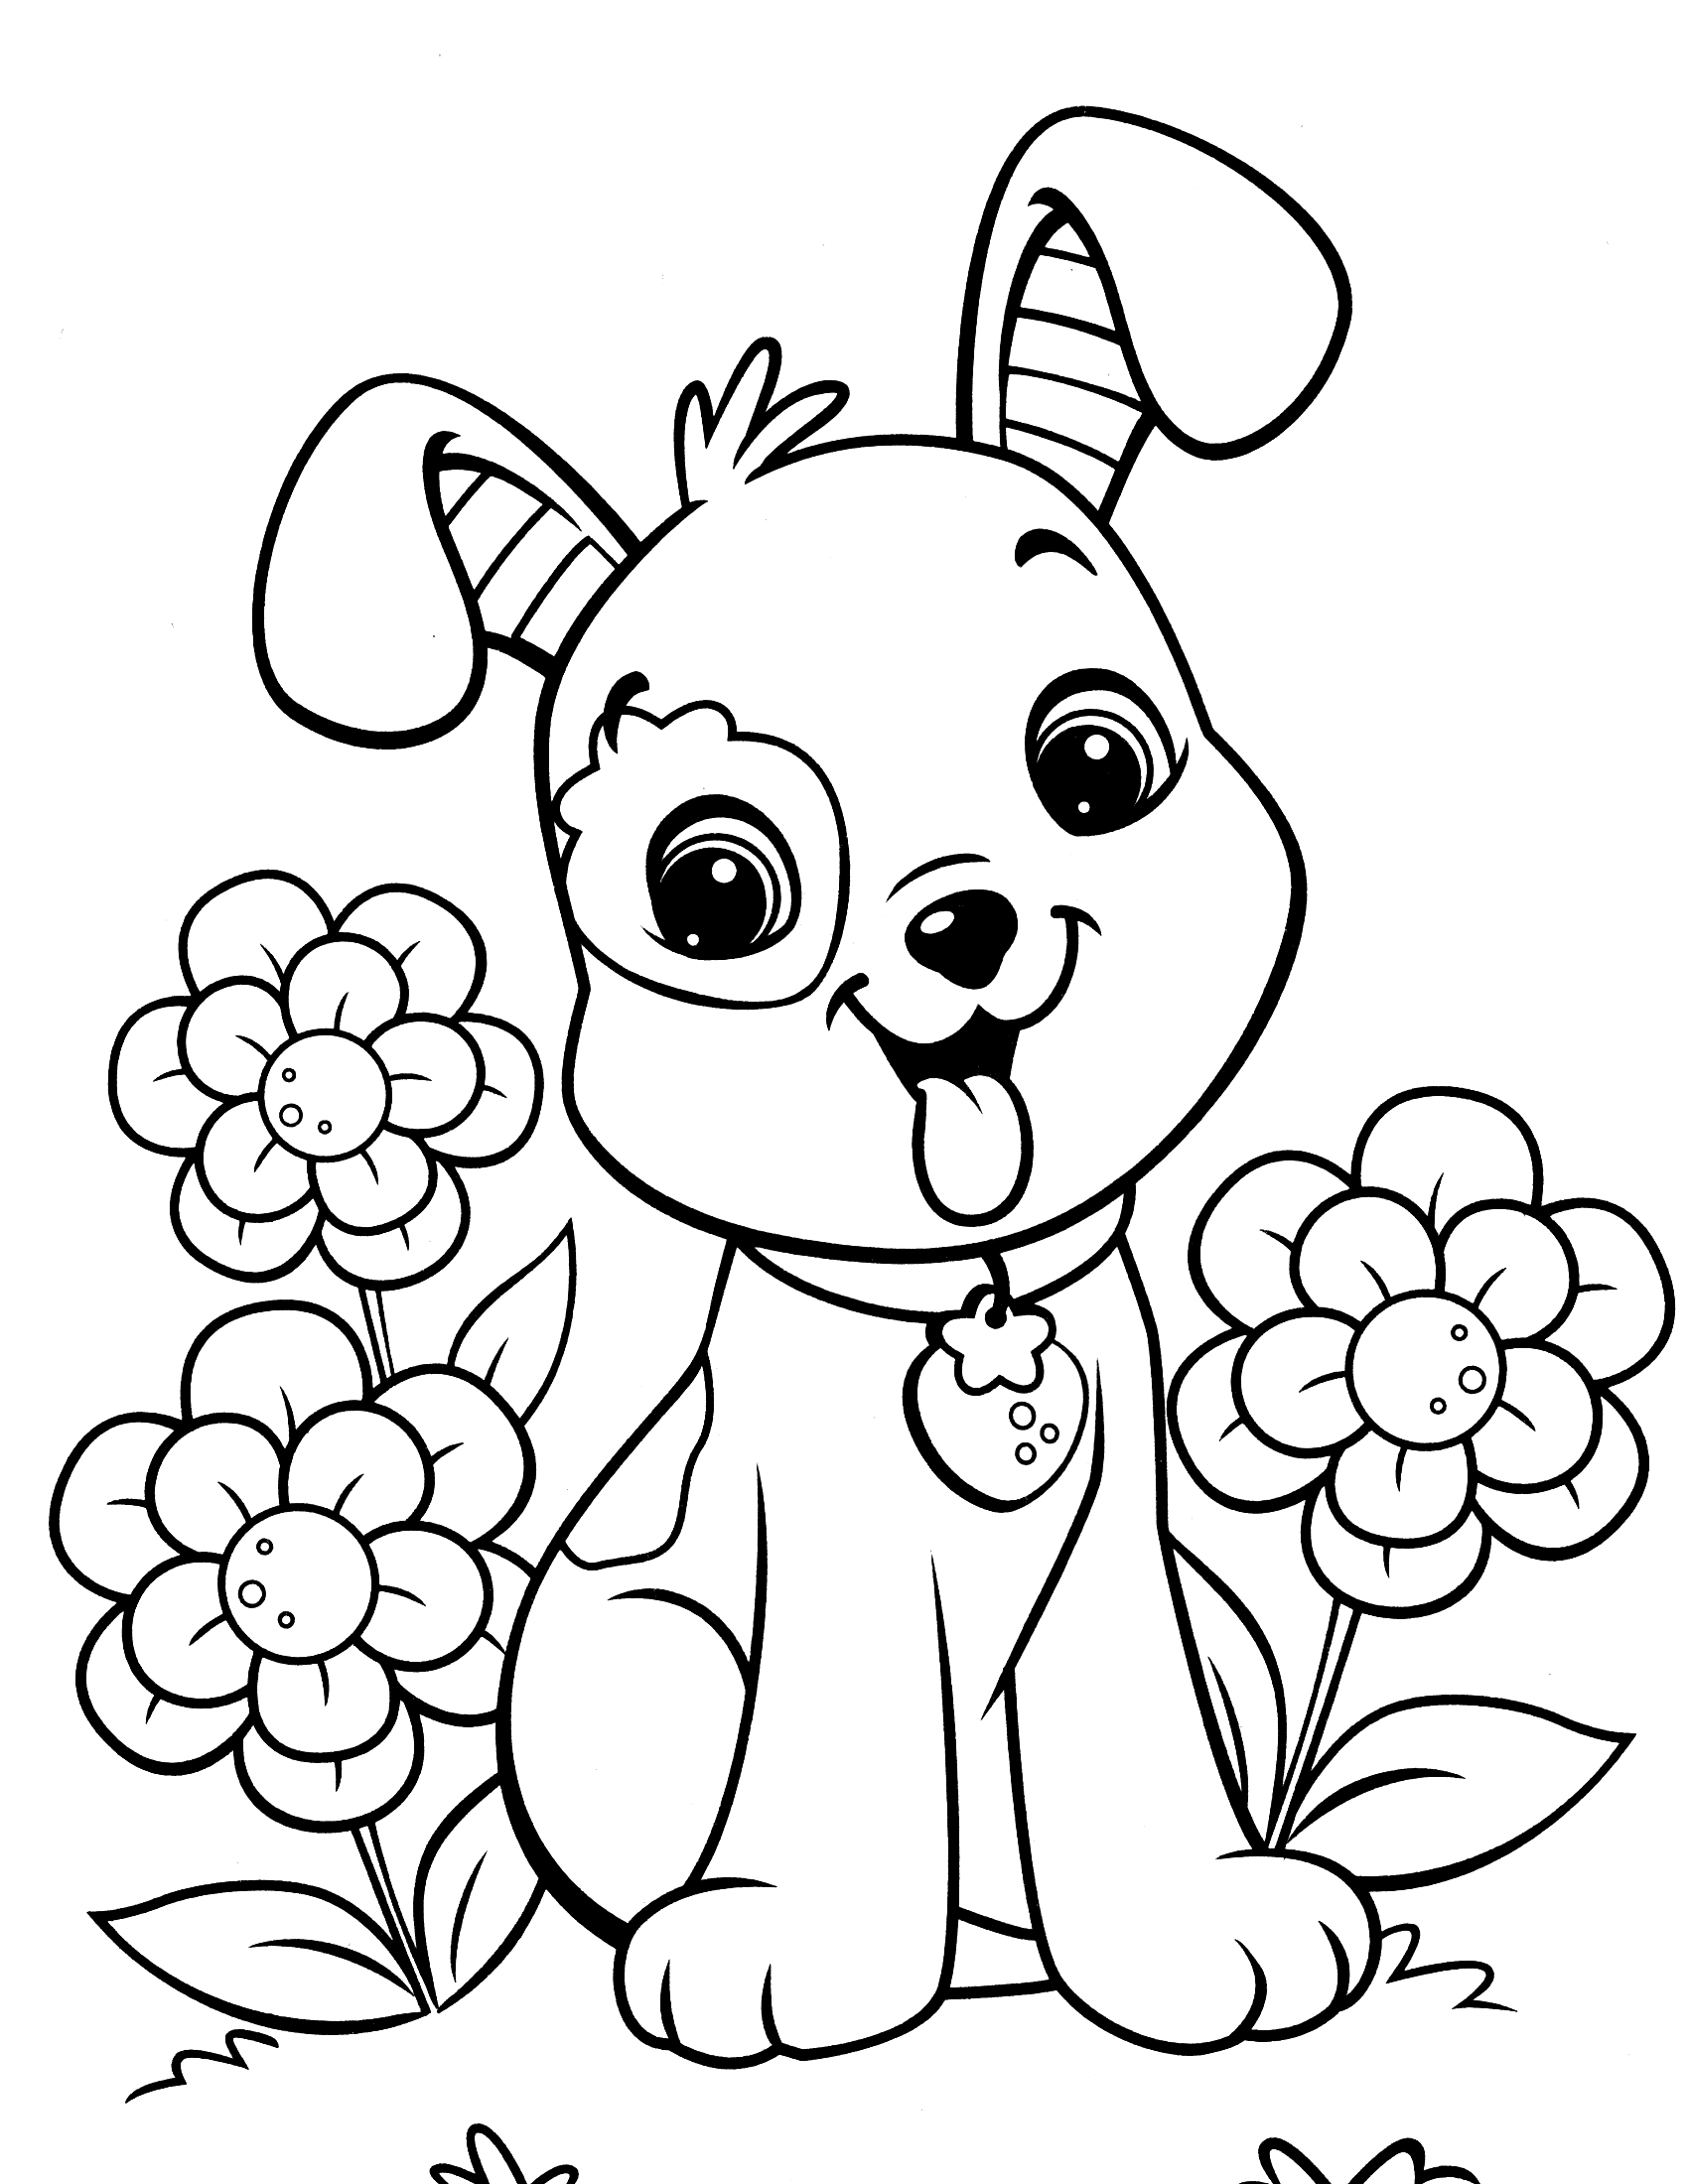 dogs coloring pictures dog coloring pages for kids preschool and kindergarten pictures dogs coloring